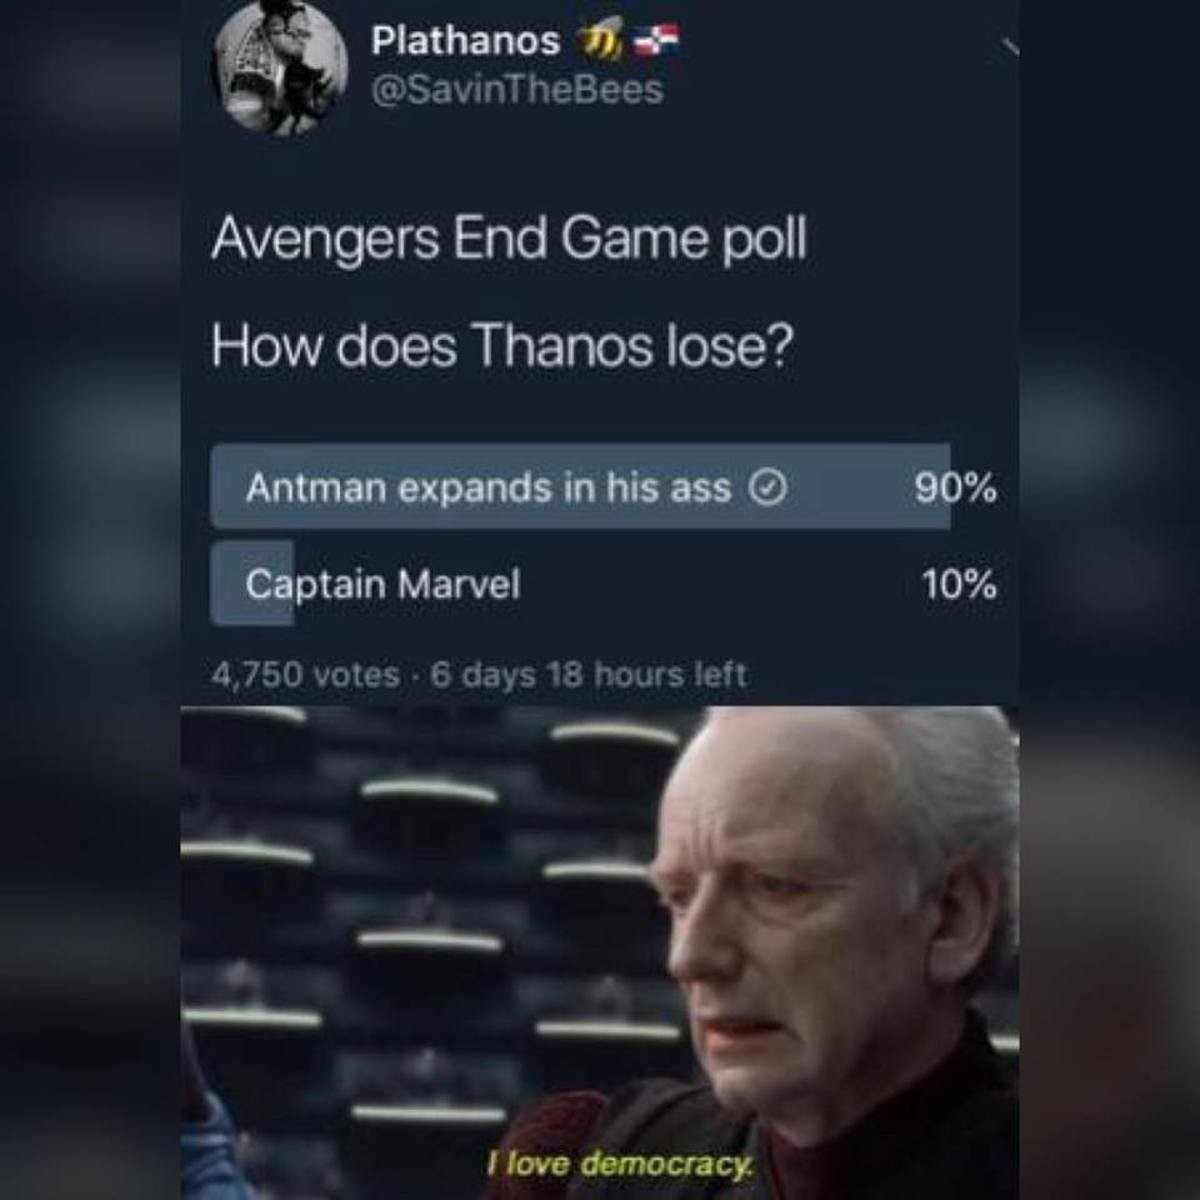 Endgame. .. Yeah, cuz that's what I want to see The Avengers get sidelined in their greatest challenge by a hero we've seen in literally one movie.